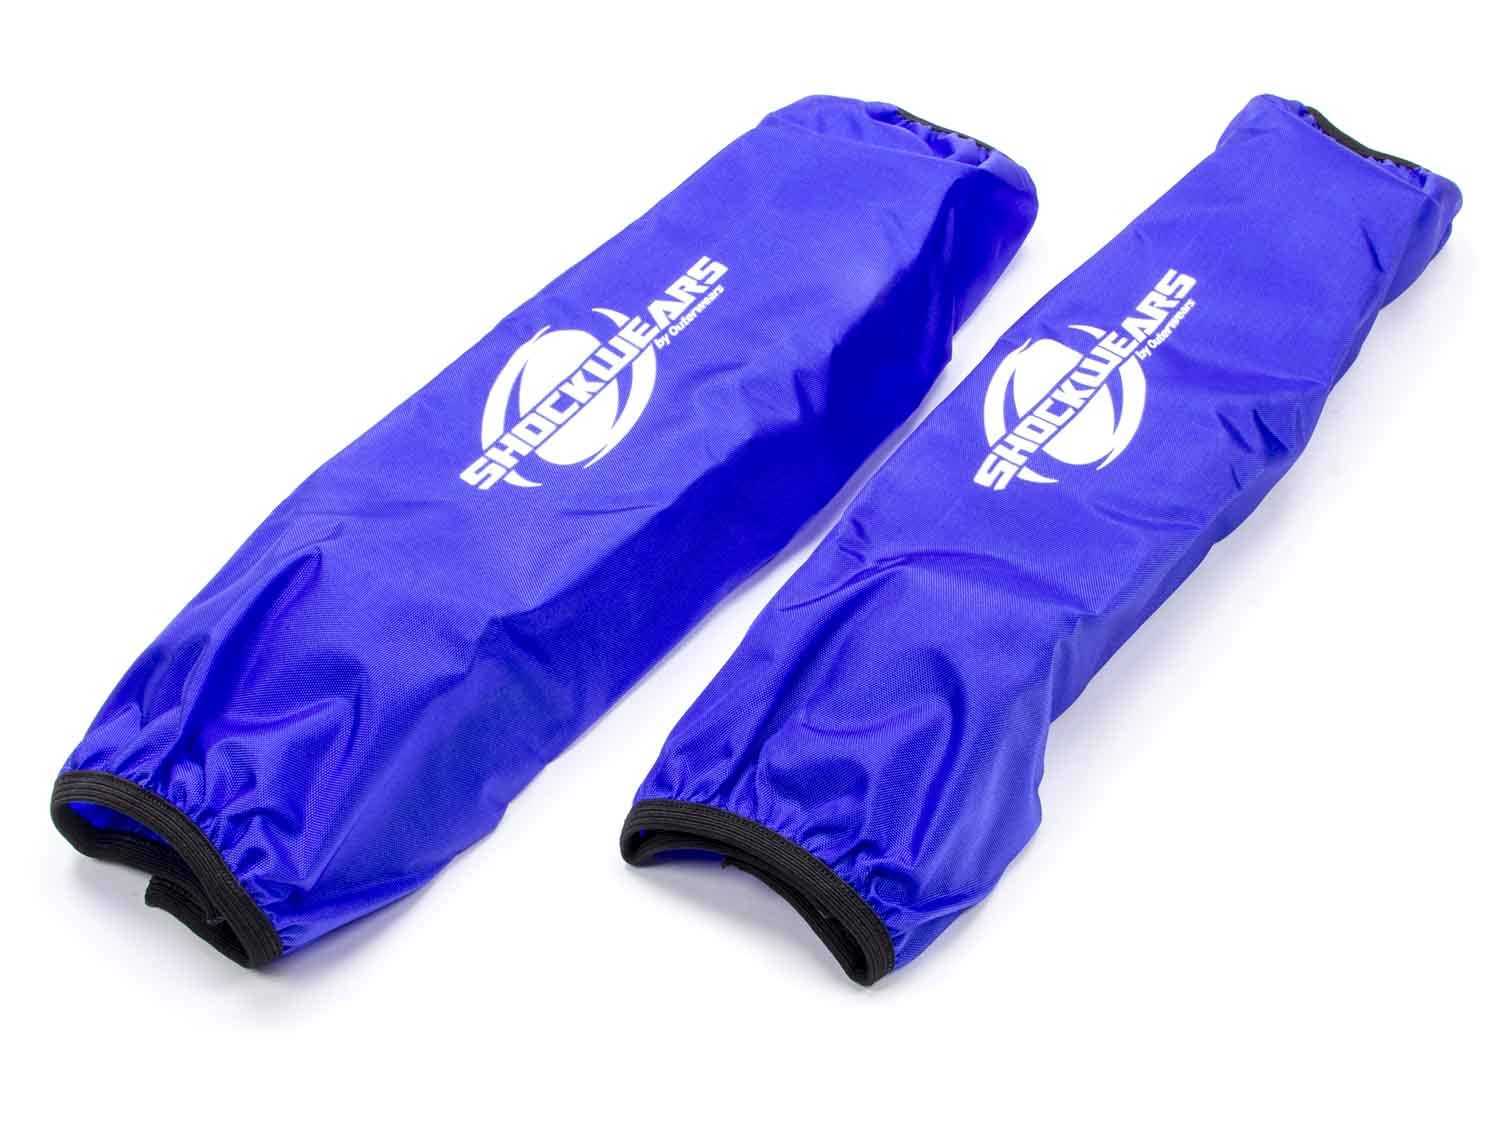 Outerwears 30-2616-02 Shock Cover, Shockwears, 16 in Long, 5.000 in OD, Elastic Ends, Hook and Loop Closure, Polyester, Blue, Pair